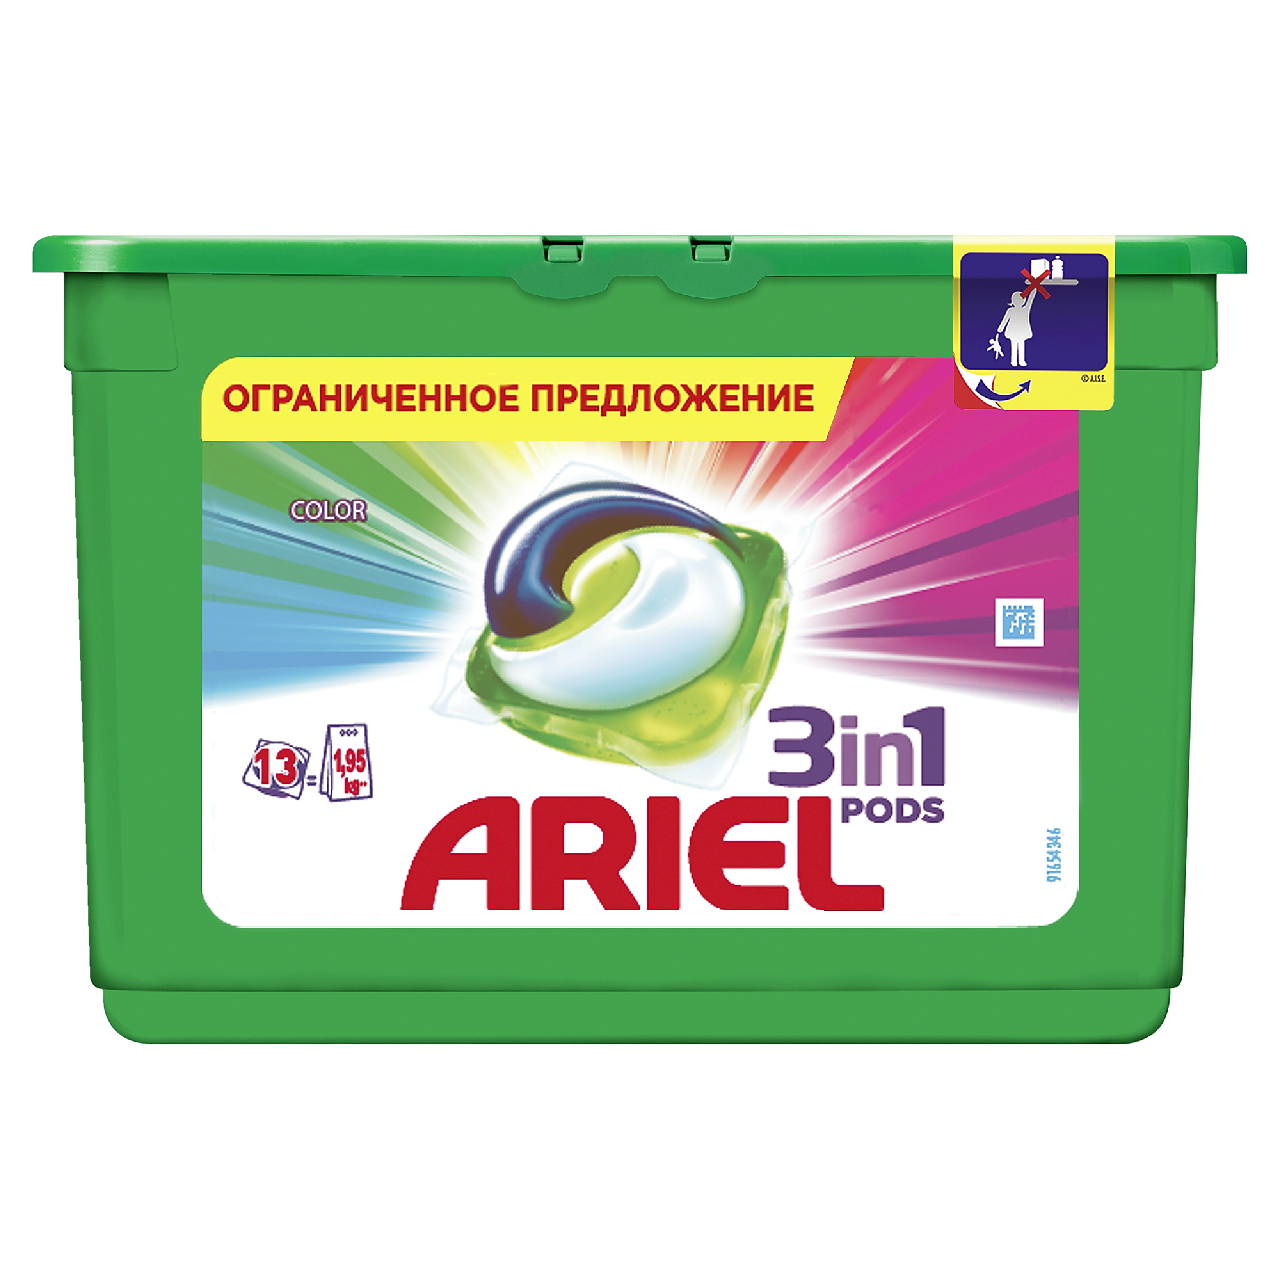 Гелевые капсулы ARIEL Color 3 in 1, 13*27 г